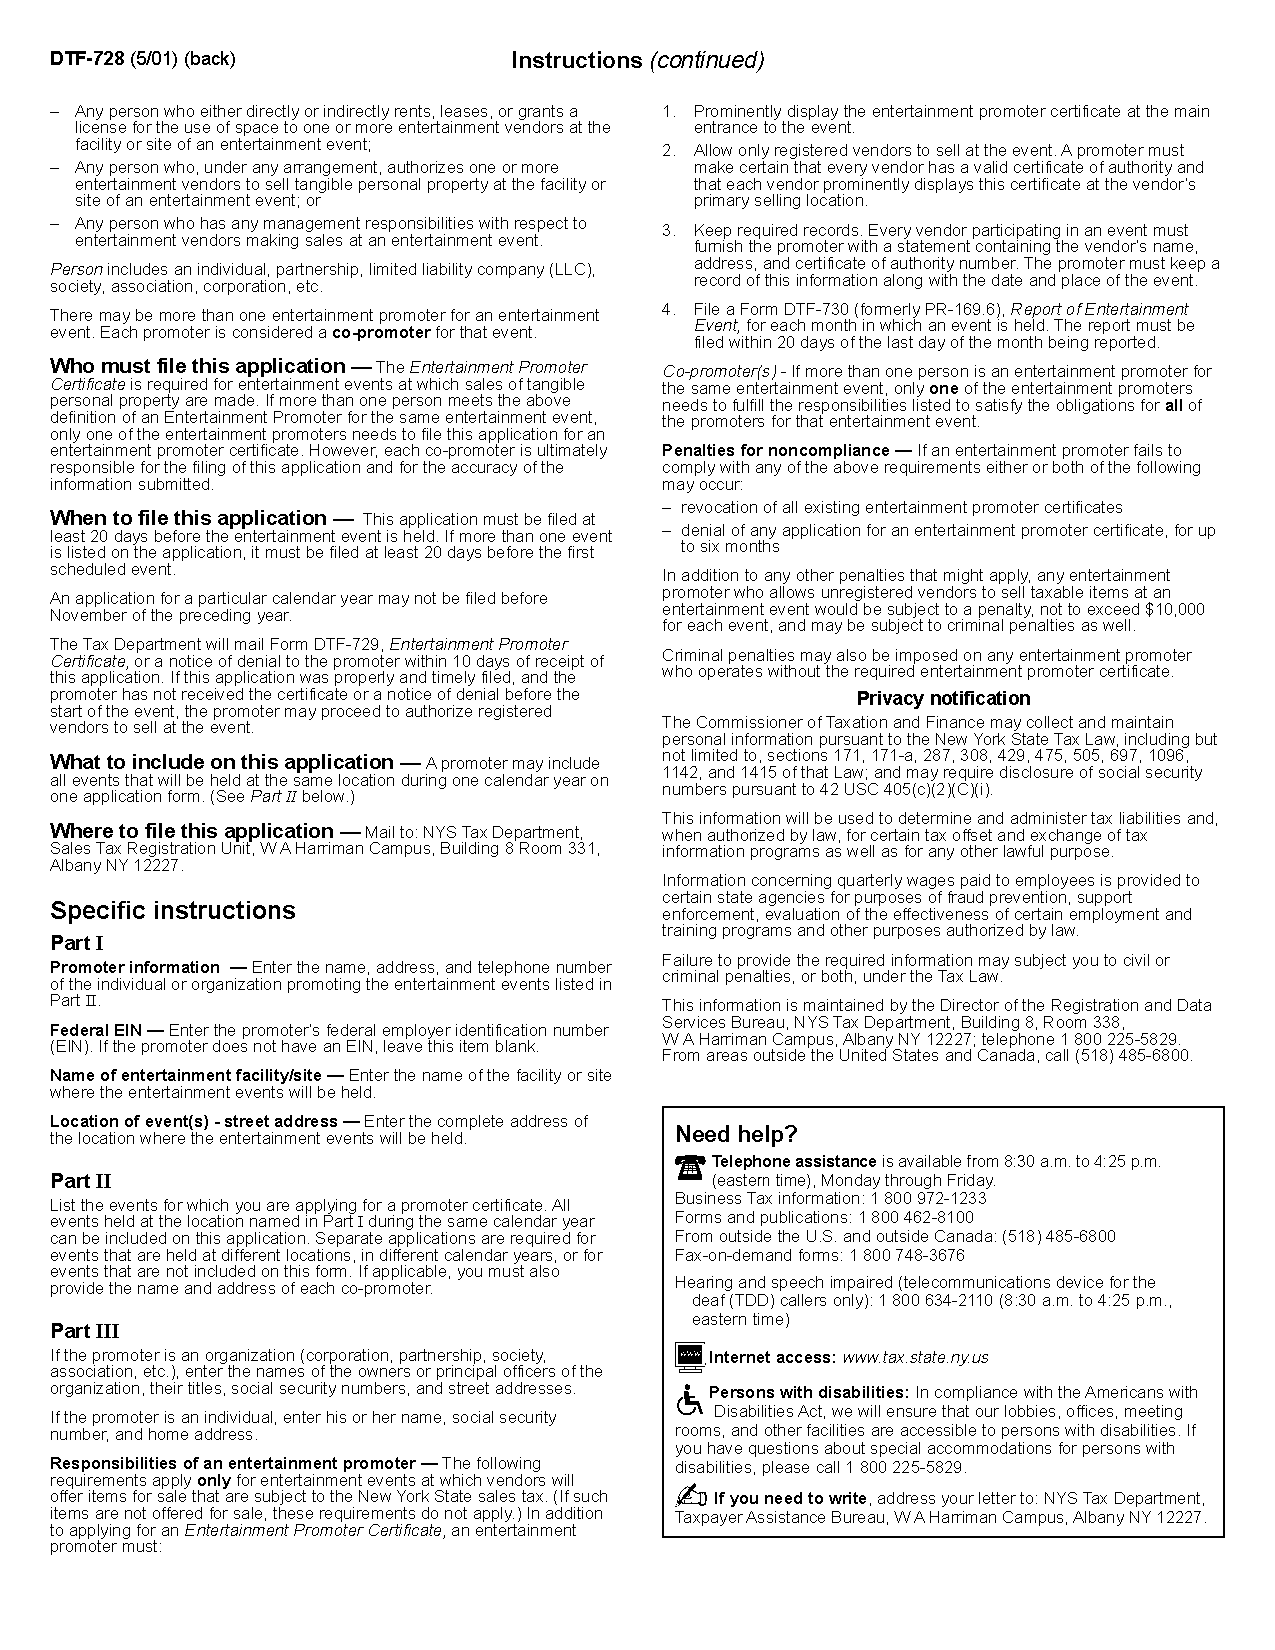 Form Dtf 728 Application For Entertainment Promoter Certificate